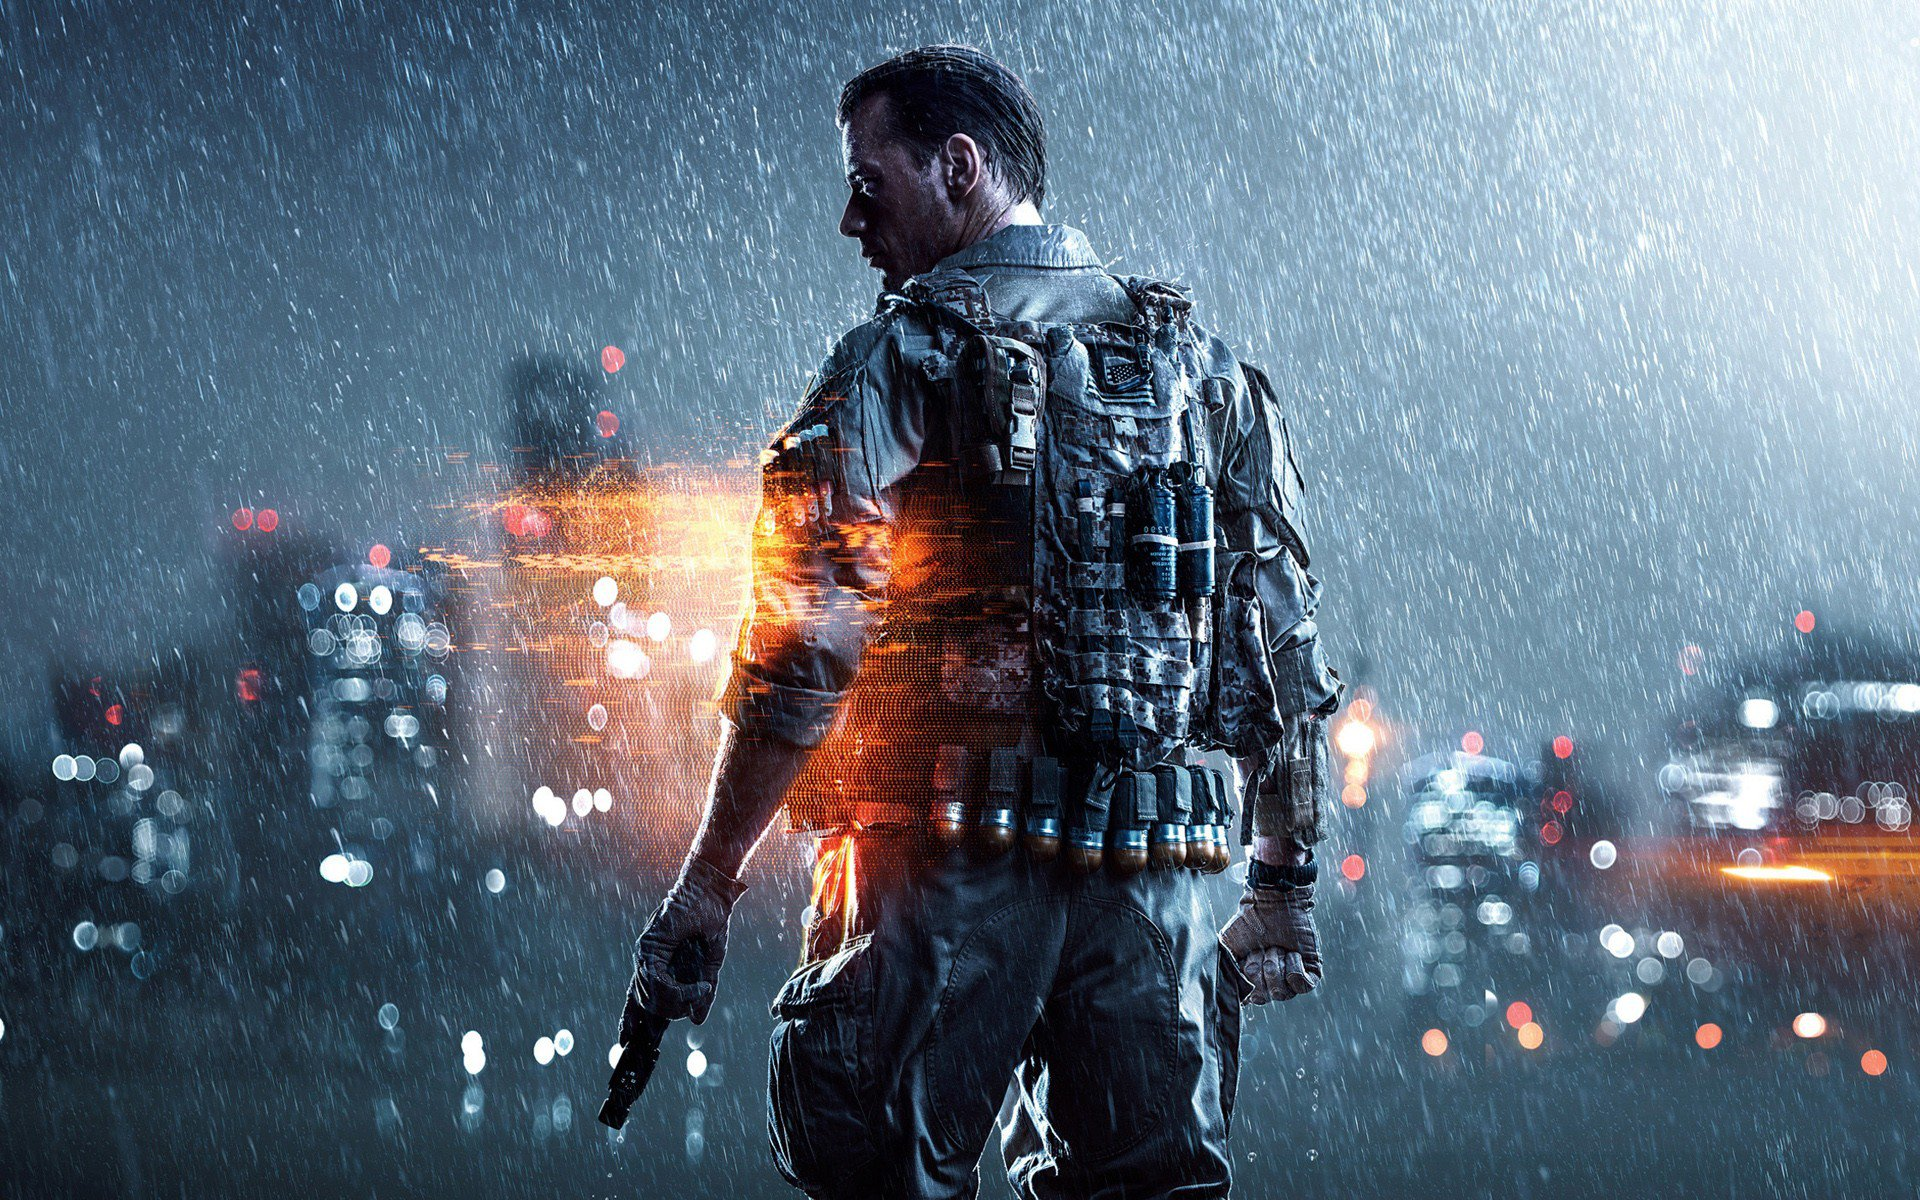 battlefield 4 hd game, hd games, 4k wallpapers, images, backgrounds